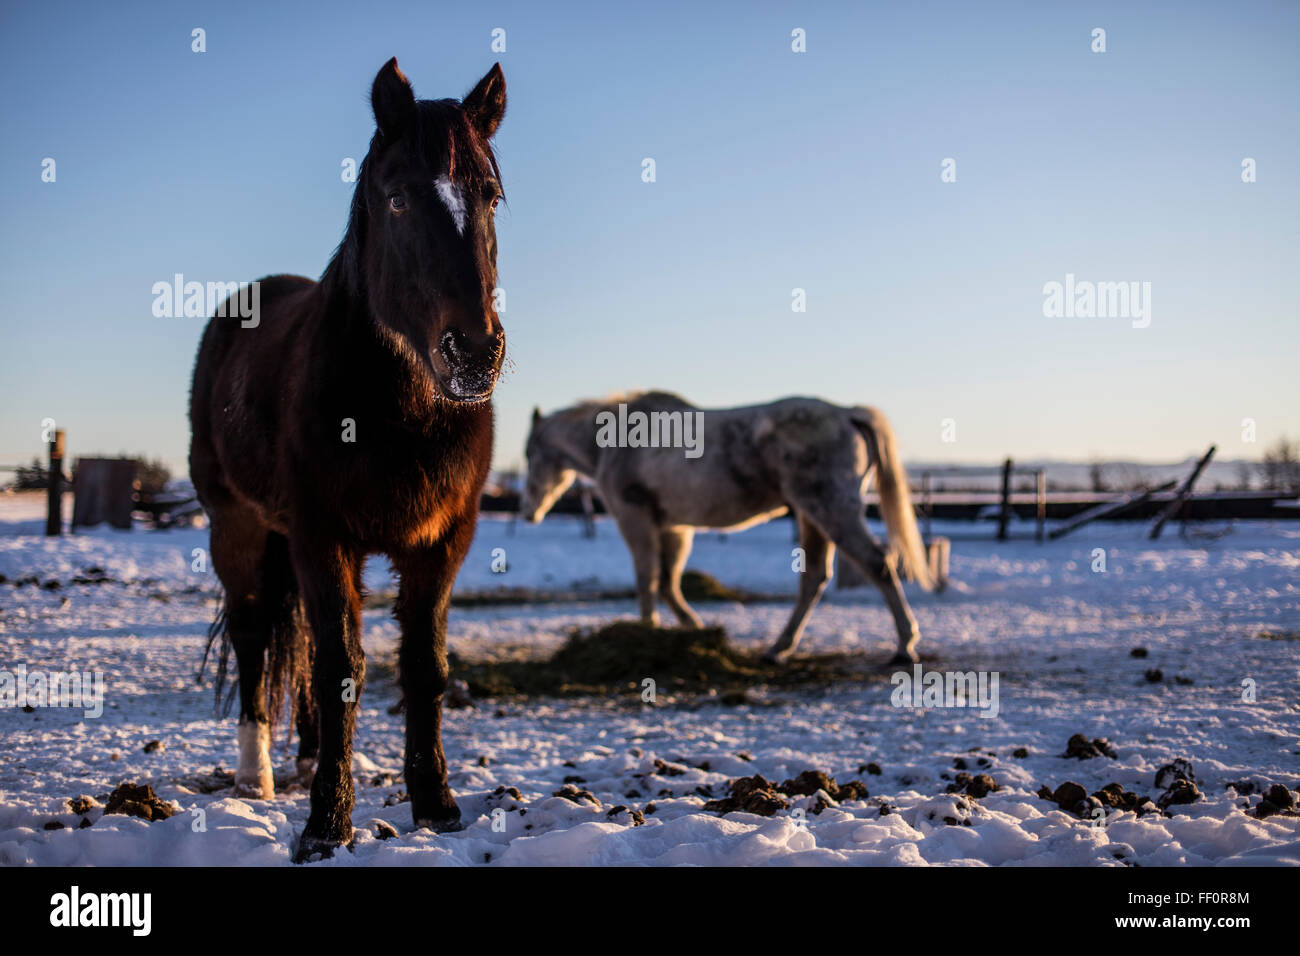 Wild American Mustangs feed in a corral during the winter after having been adopted from the US Bureau of Land Management - Stock Image